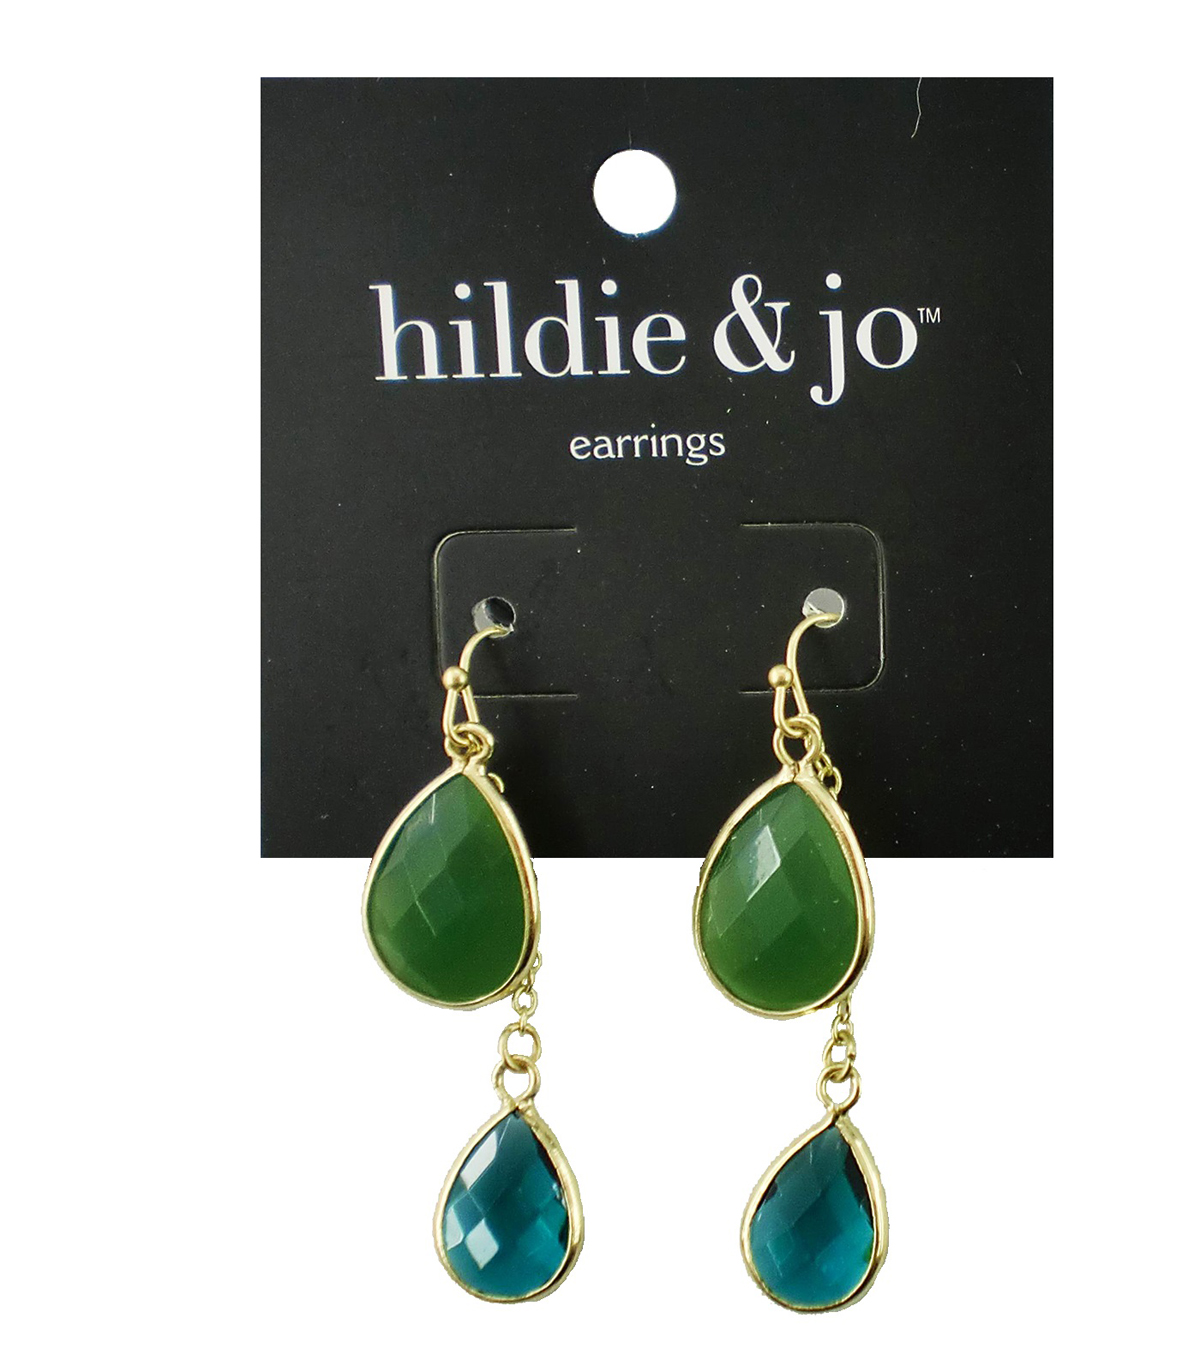 hildie & jo Gold Earrings-Green & Blue Stones